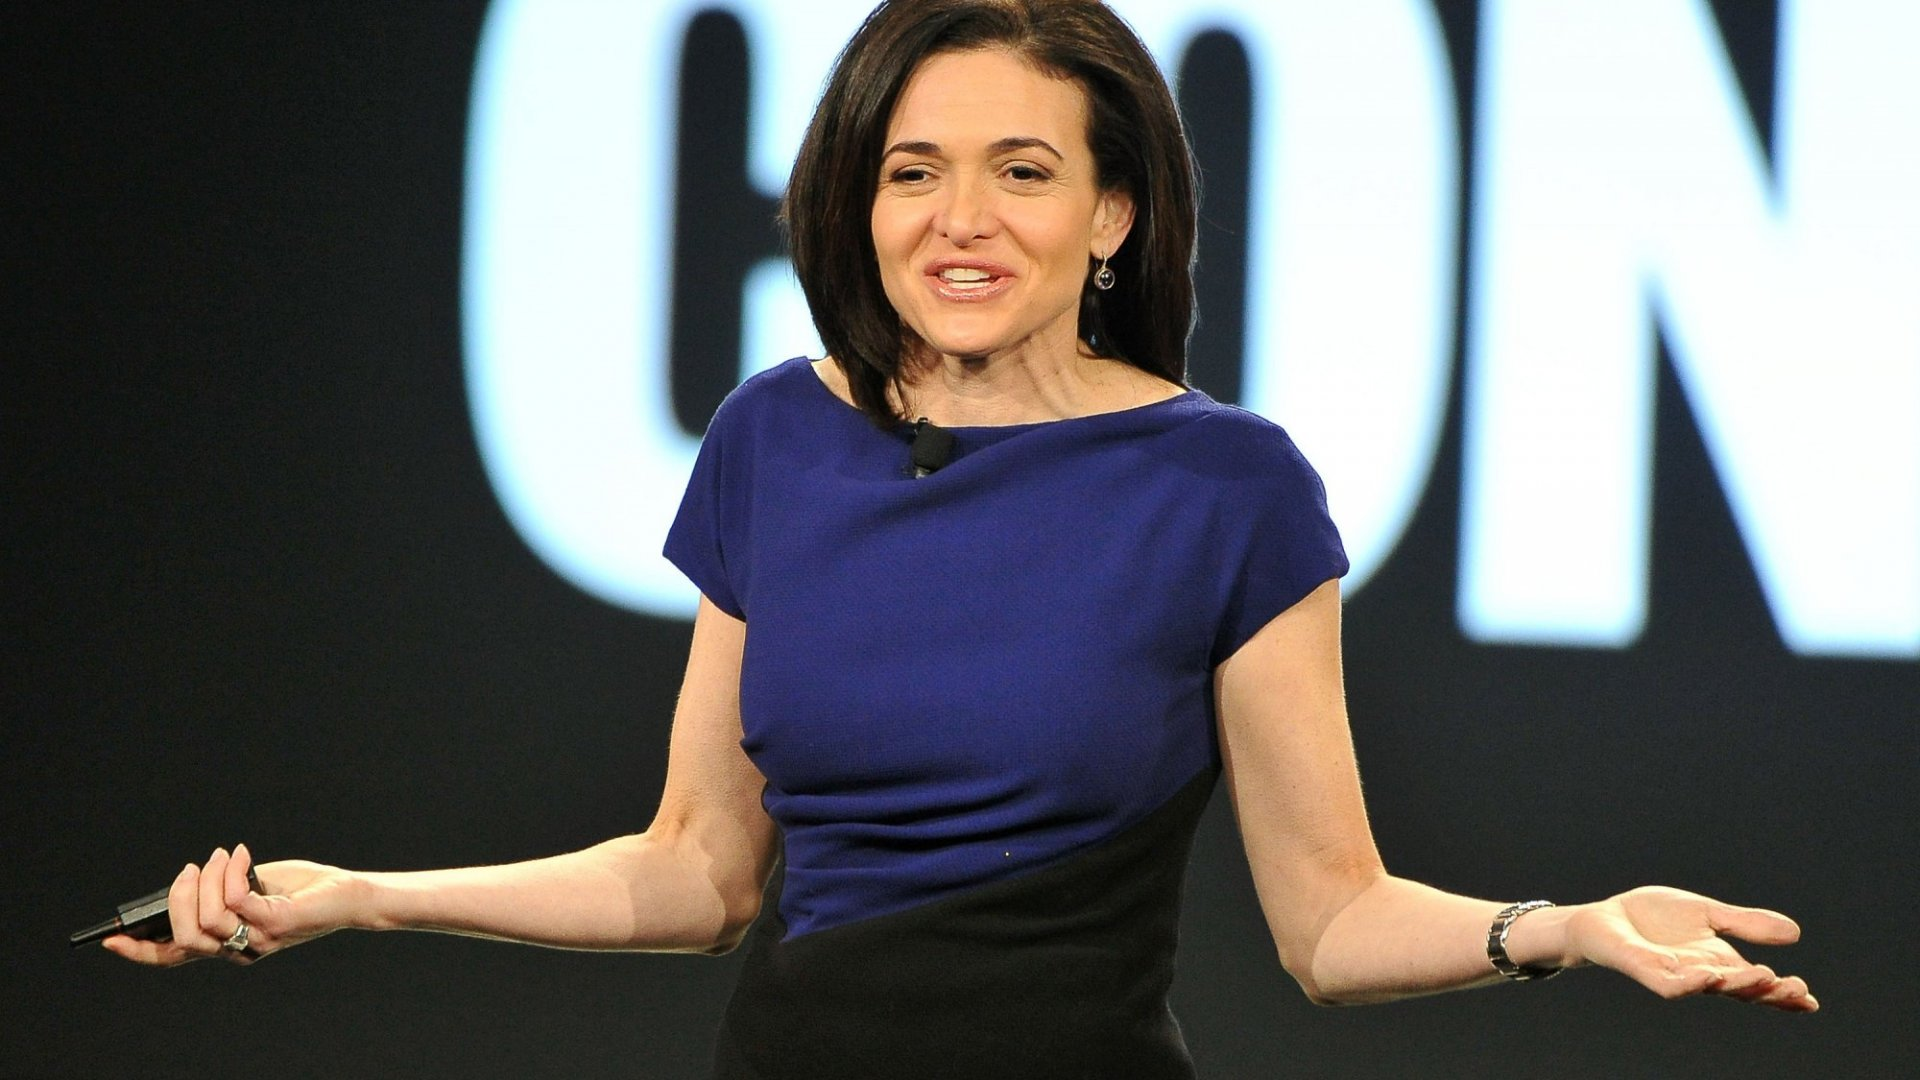 Meet 12 of the Most Powerful Women Executives in America